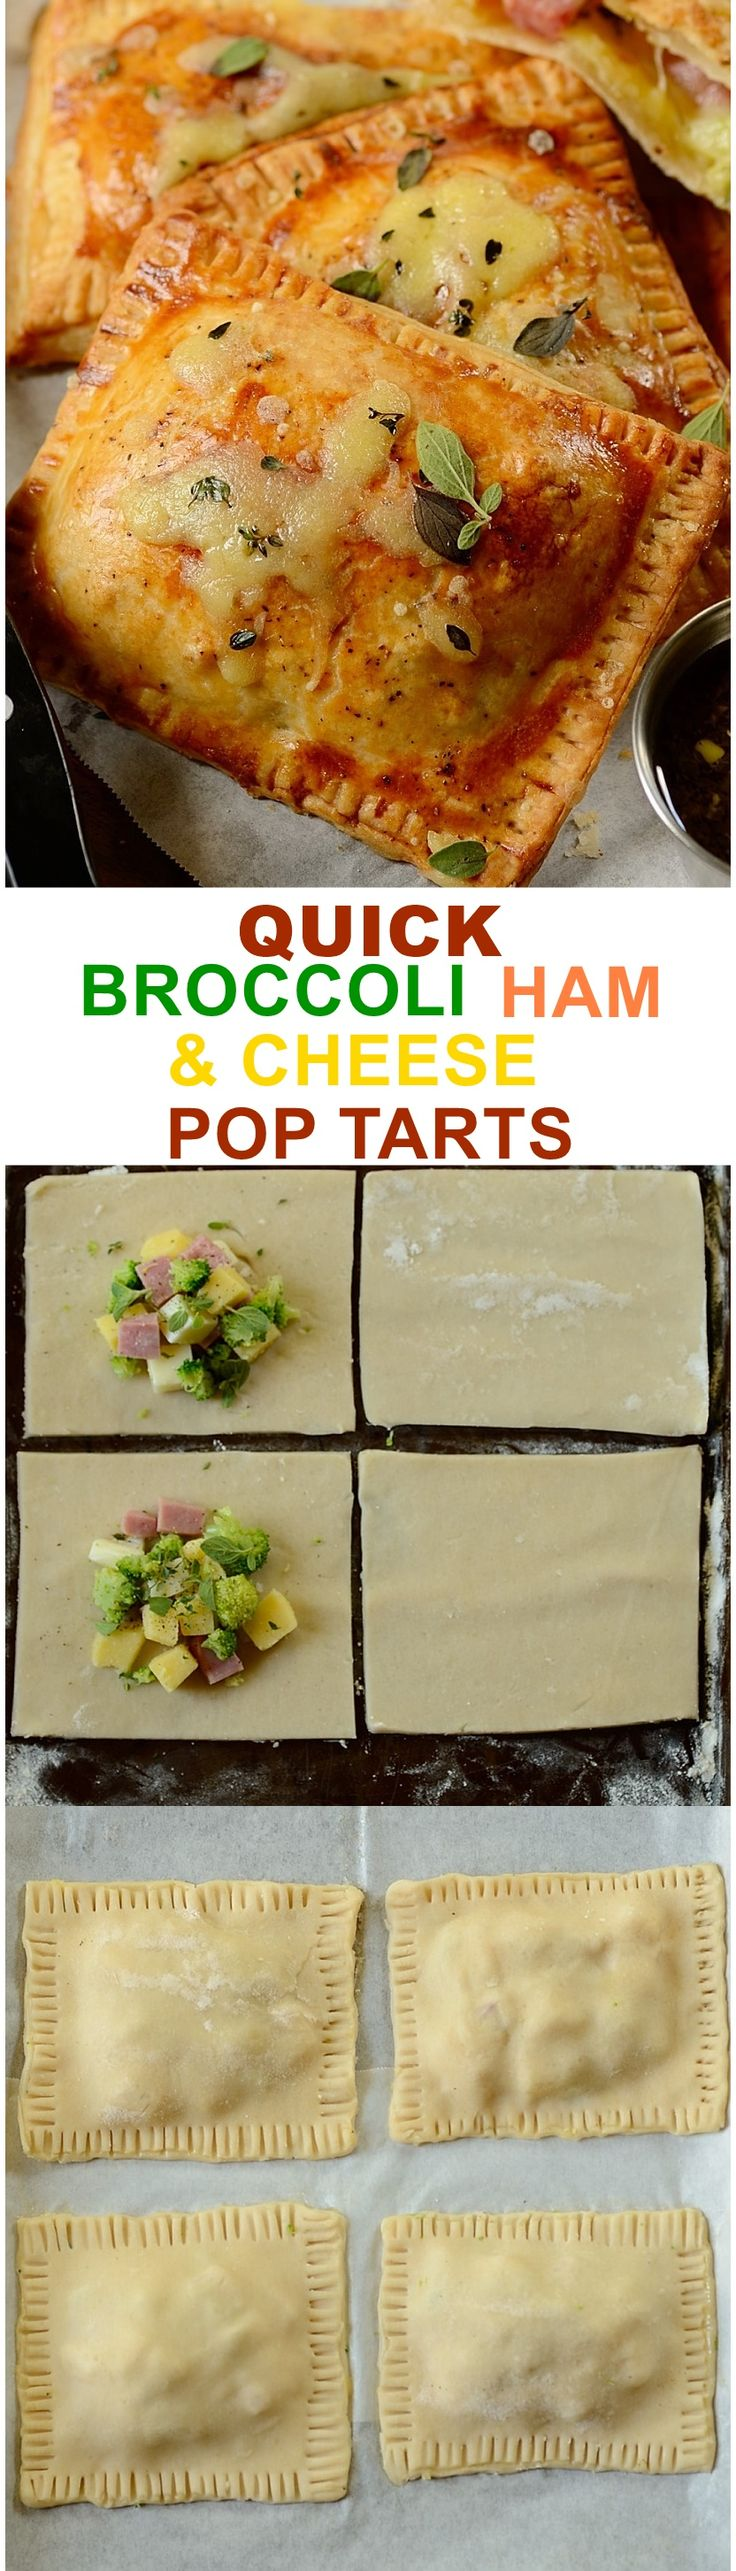 QUICK Broccoli, Ham and Cheese Pop Tarts for back to school or as an easy-to-go…